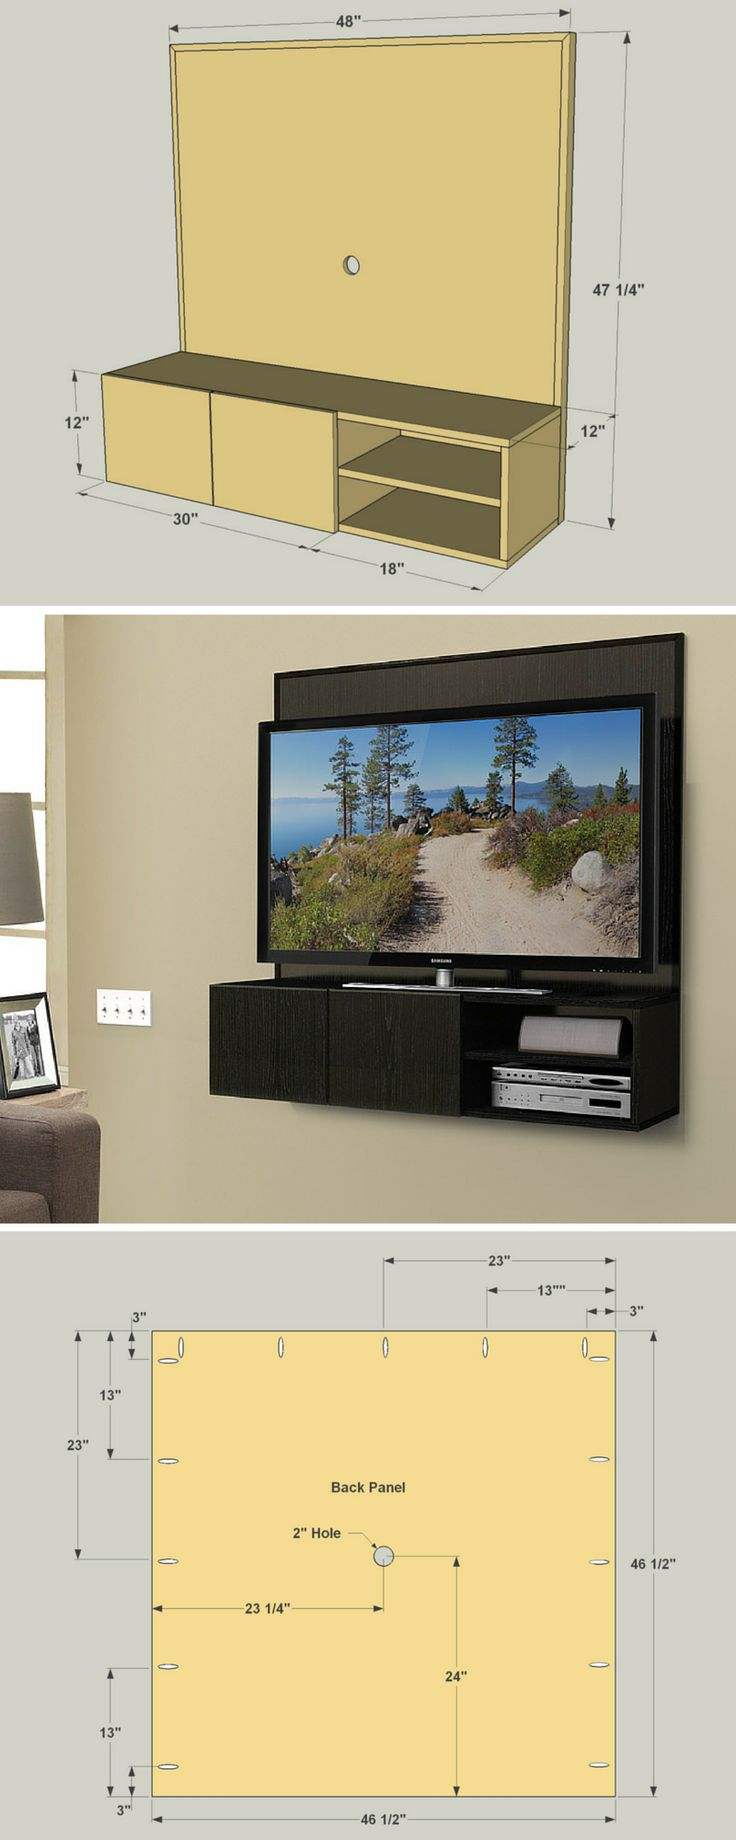 This Wall Mounted Media Cabinet Takes A New Approach To The Traditional  U201centertainment Center.u201d It Hangs On The Wall, Allowing You To Mount Your TV  To It, ...